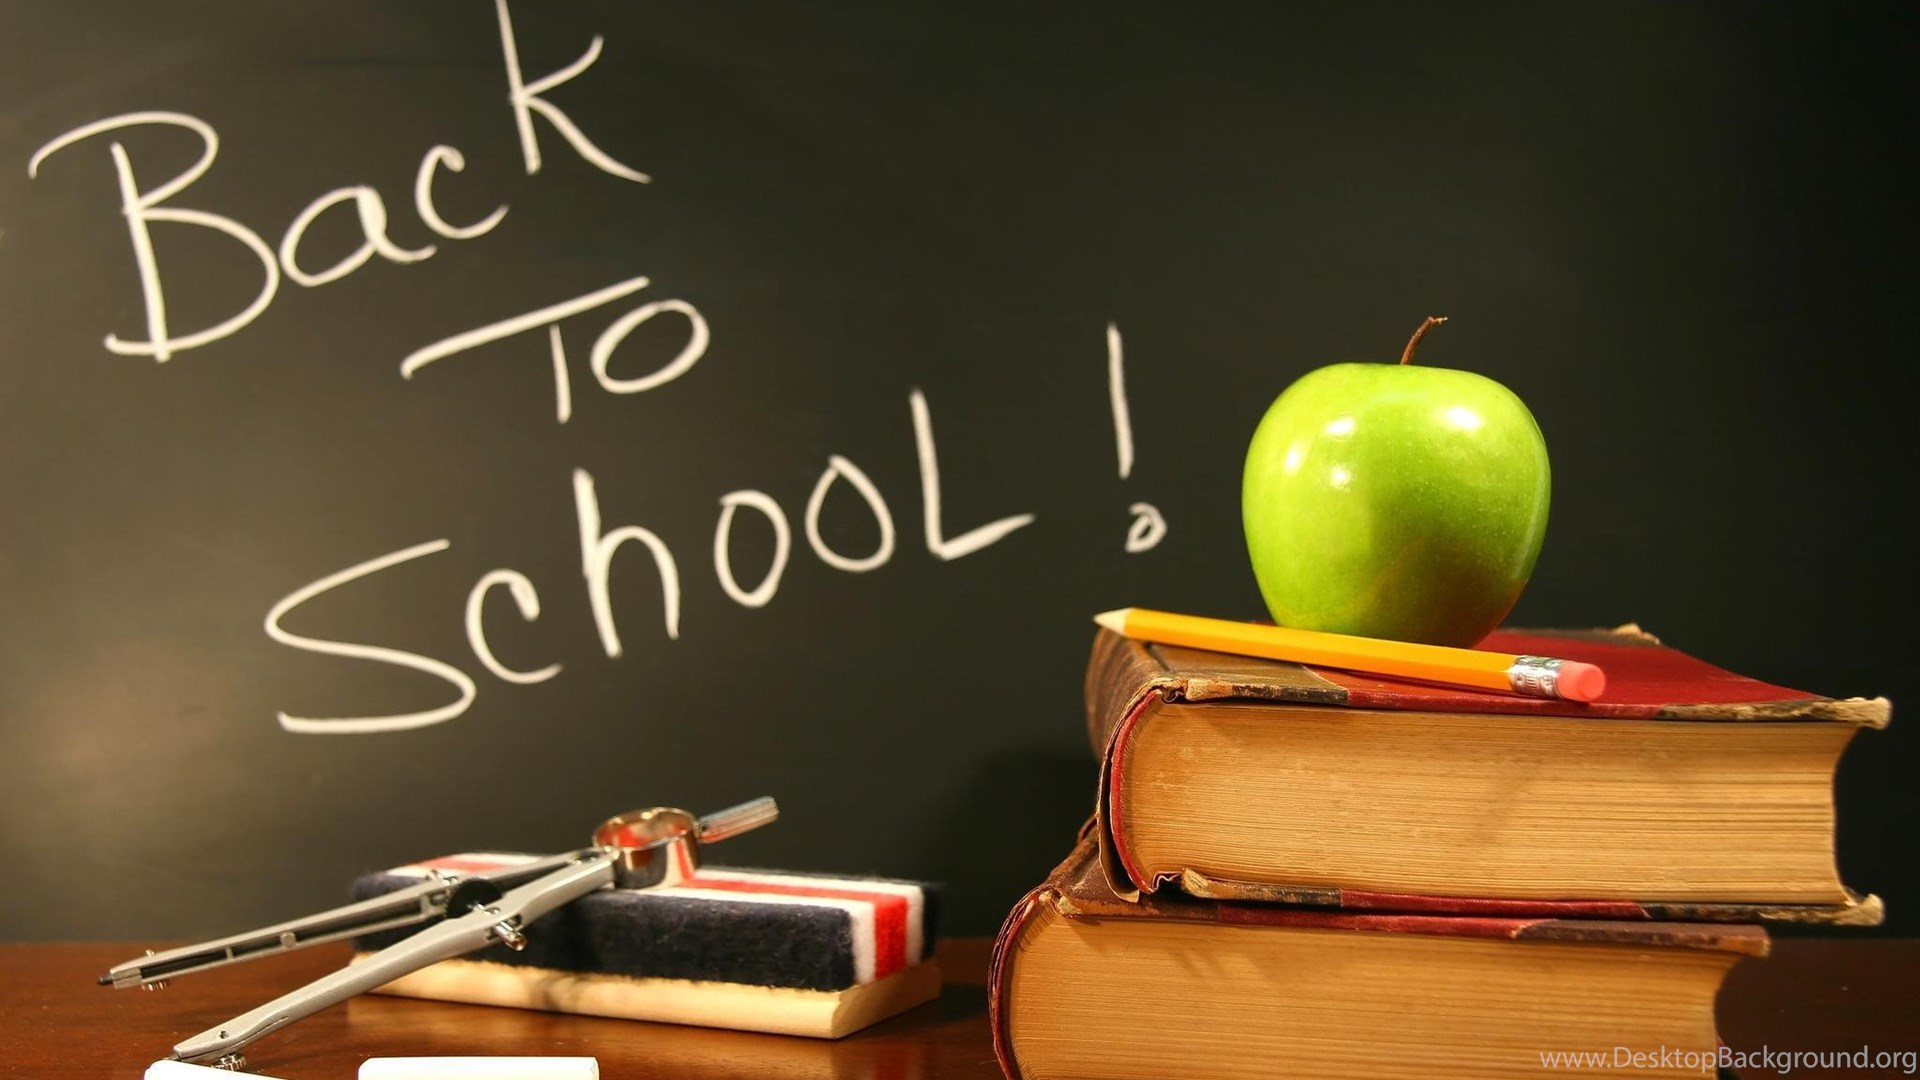 Back To School HD Wallpapers Pictures Images Photos Desktop 1920x1080